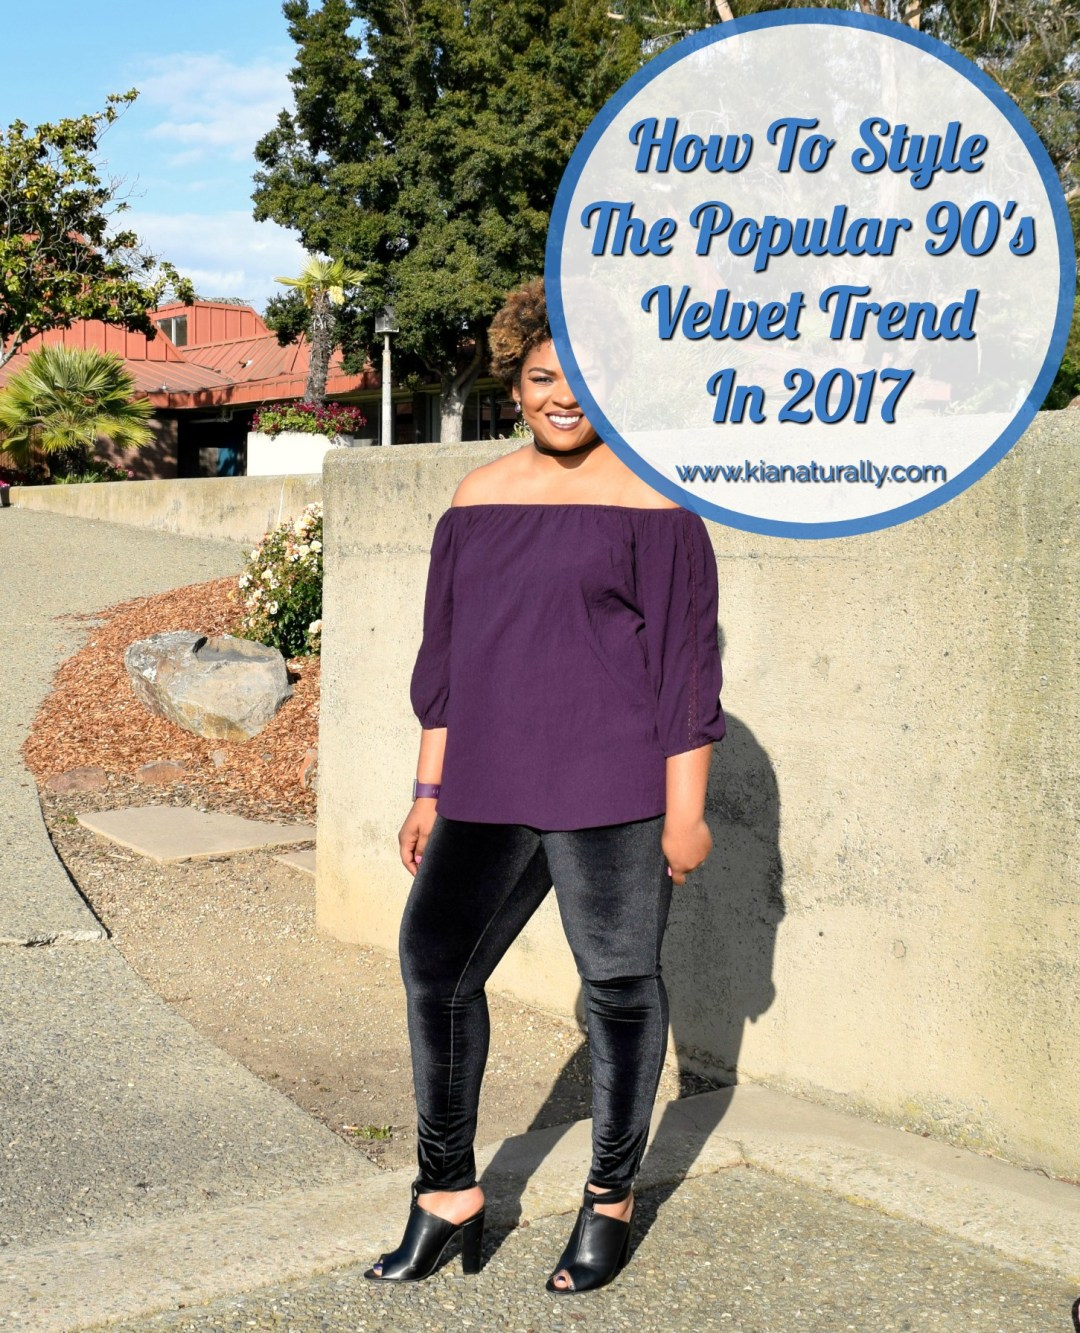 How To Style The Popular 90's Velvet Trend In 2017 - www.kianaturally.com